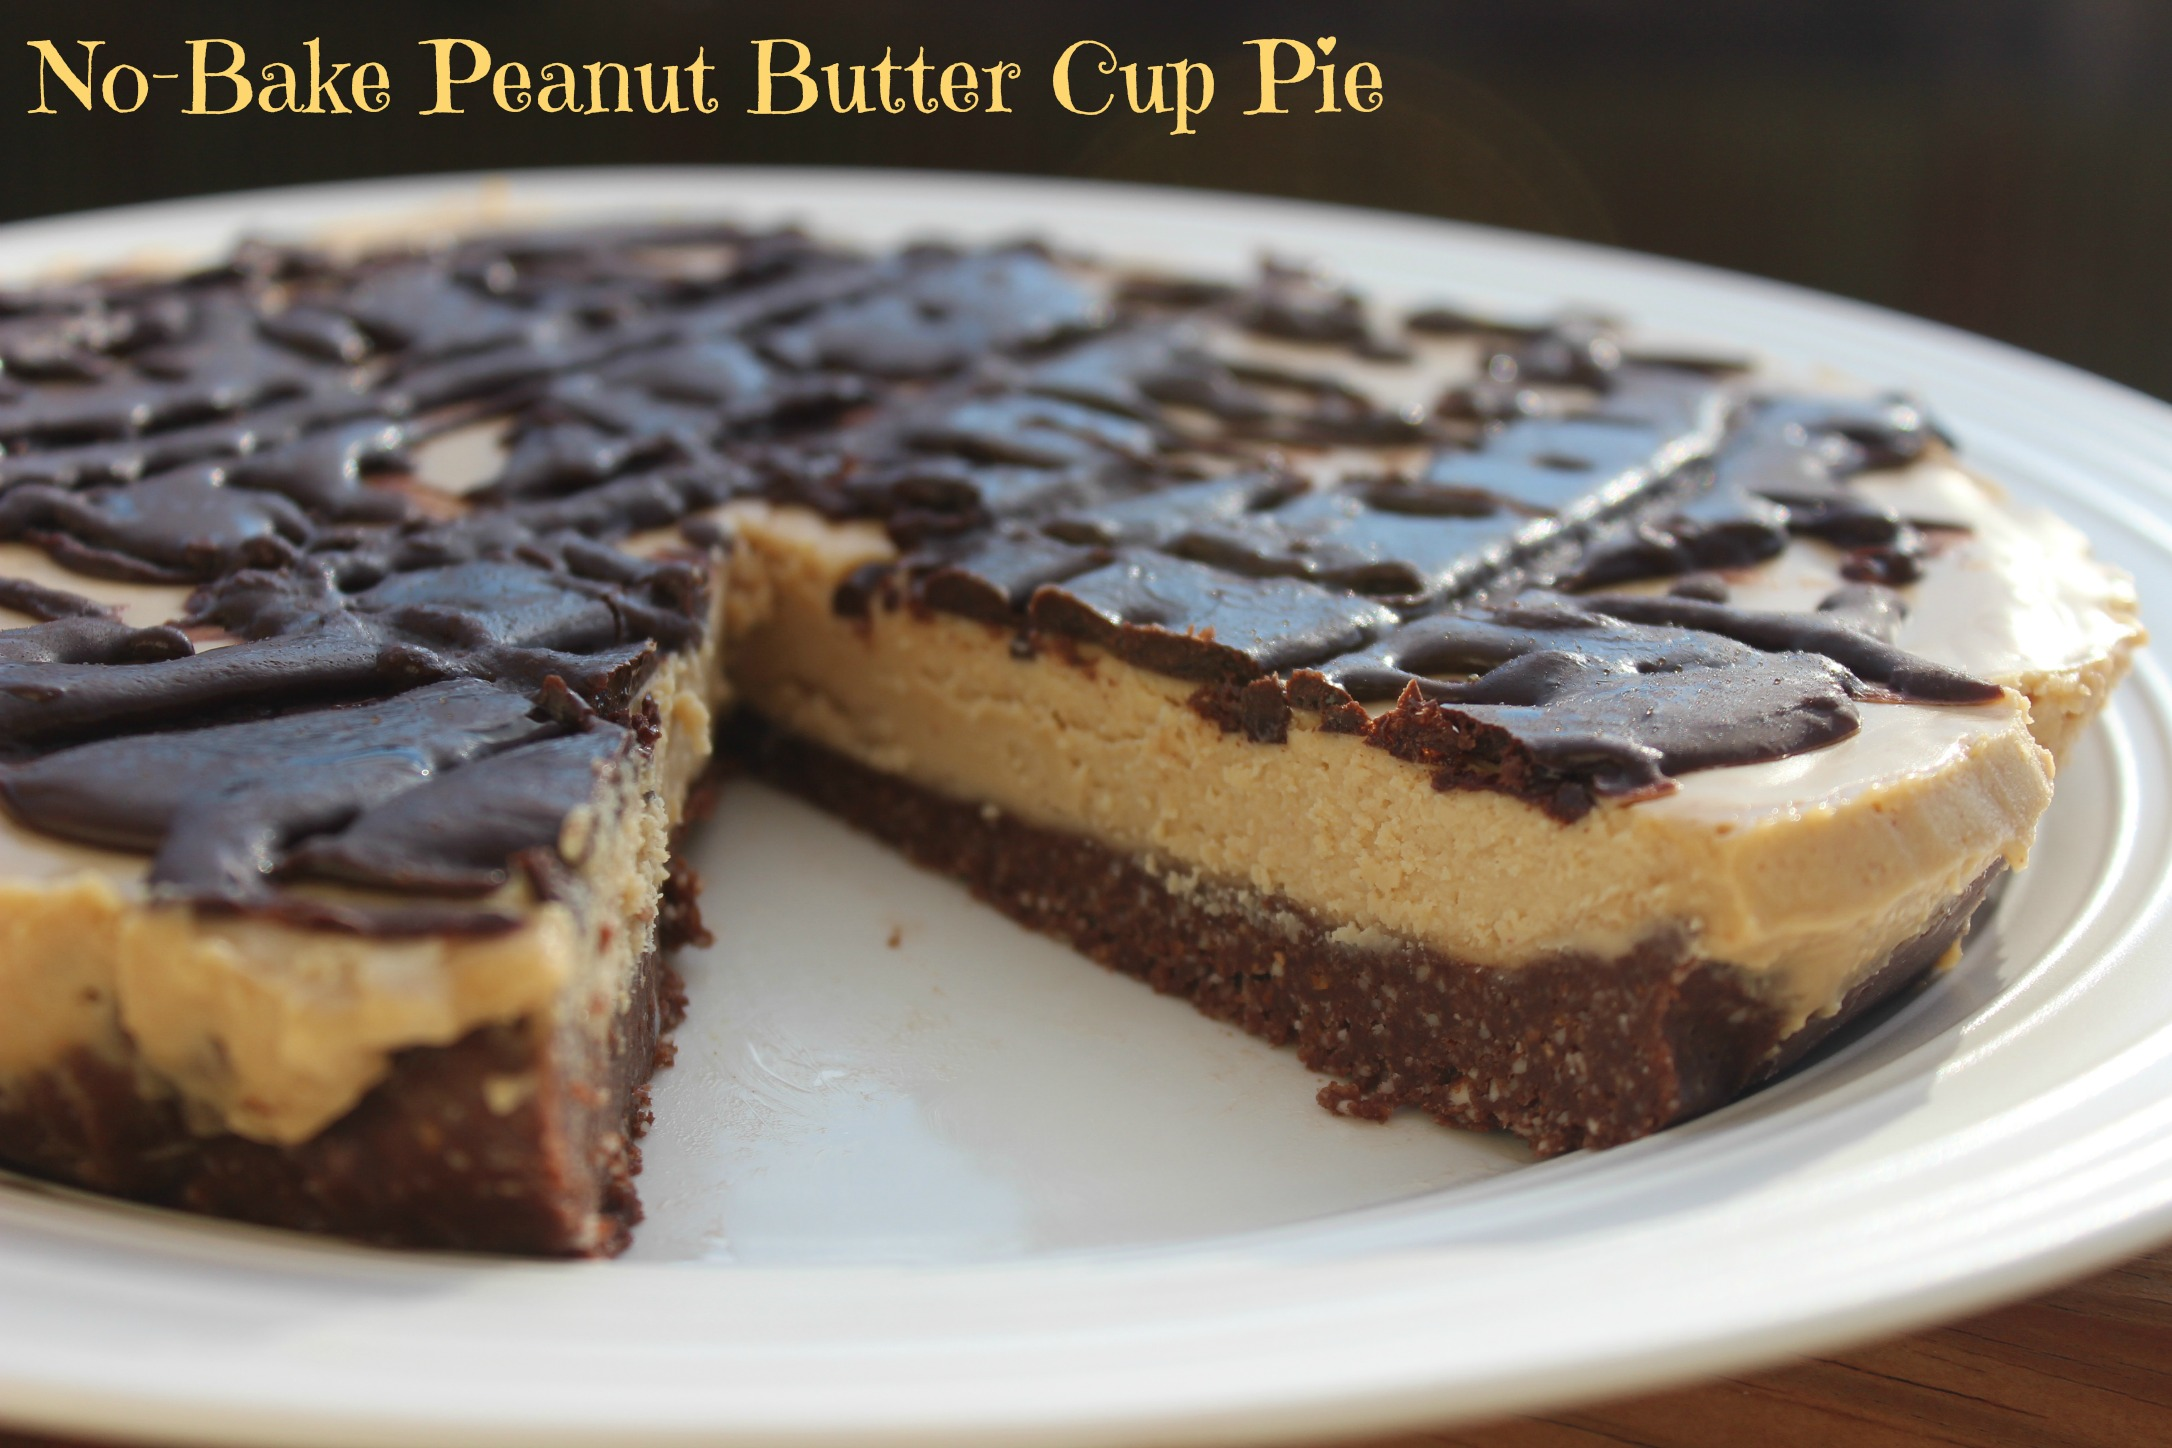 ... with This No-Bake Peanut Butter Cup Pie {Vegan, Gluten-Free